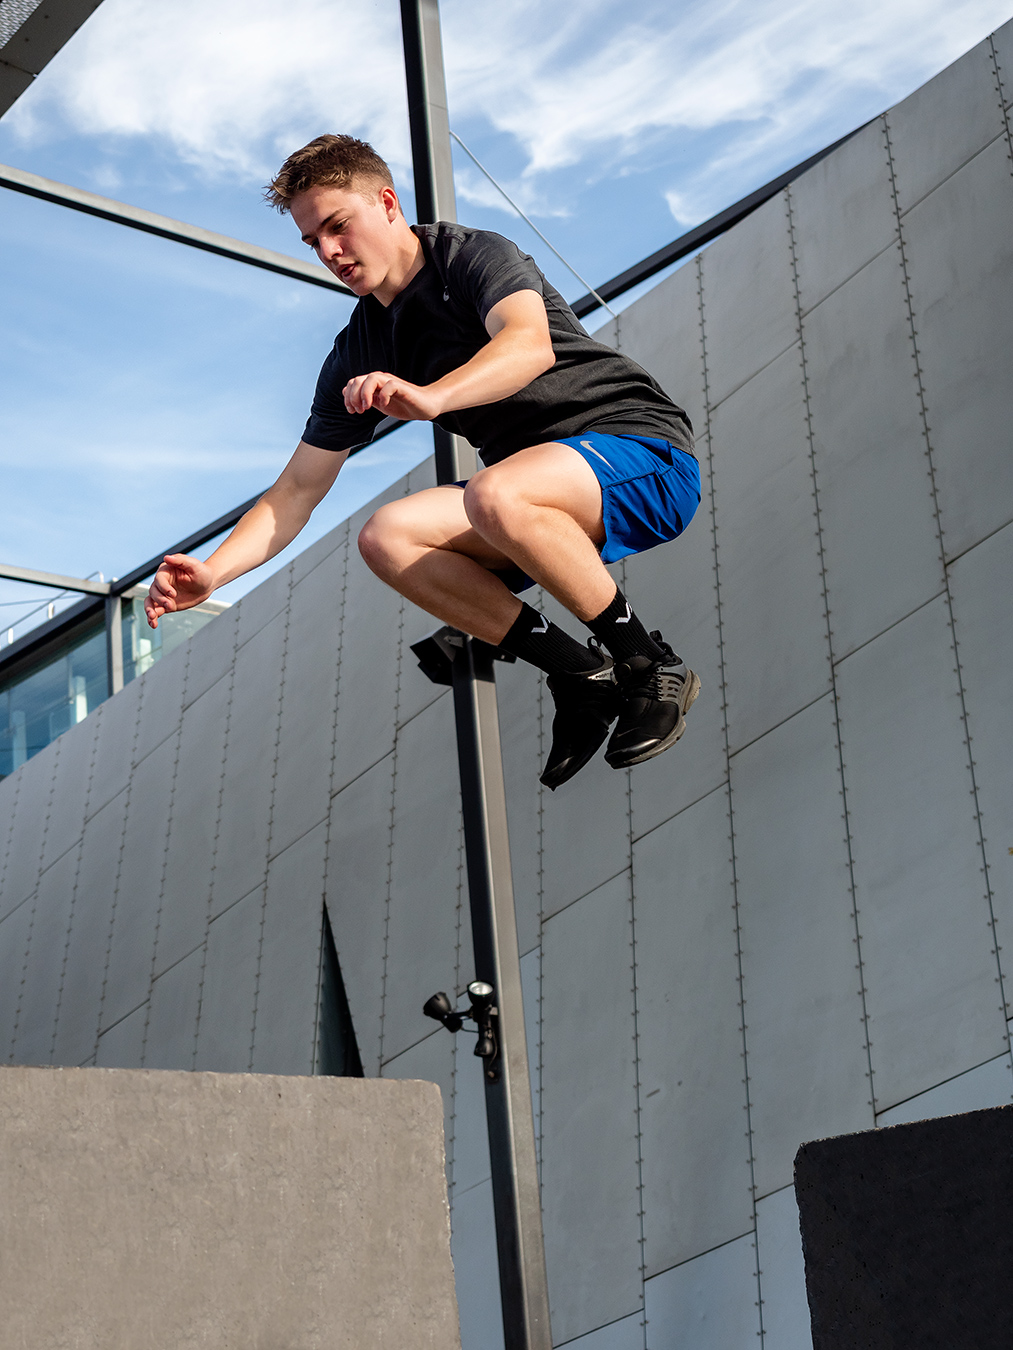 Austin Melbournes teen fitness model performing a plyometric onto a concrete step